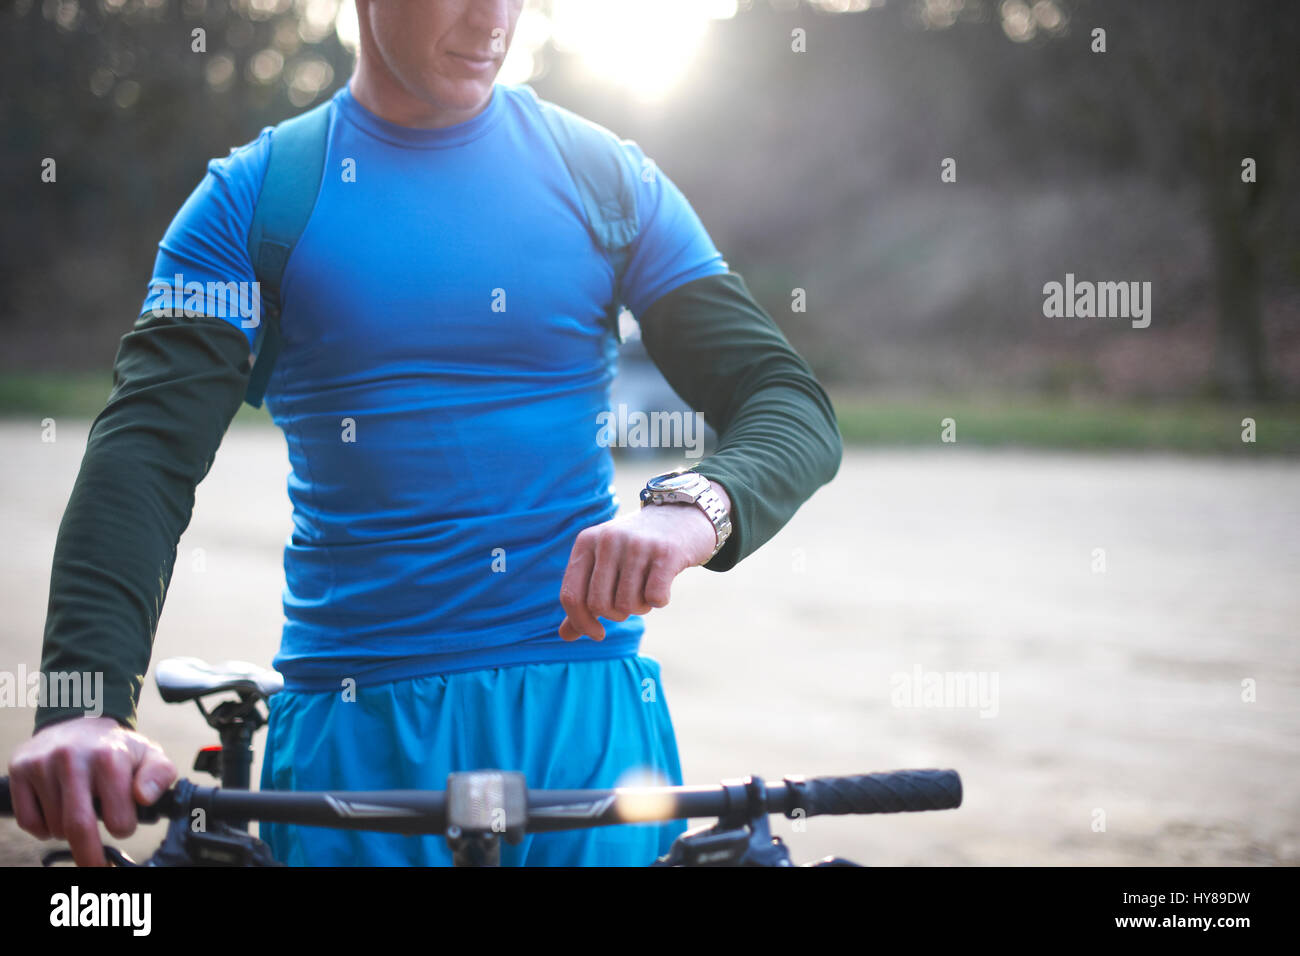 A man checks his watch before going mountain biking - Stock Image